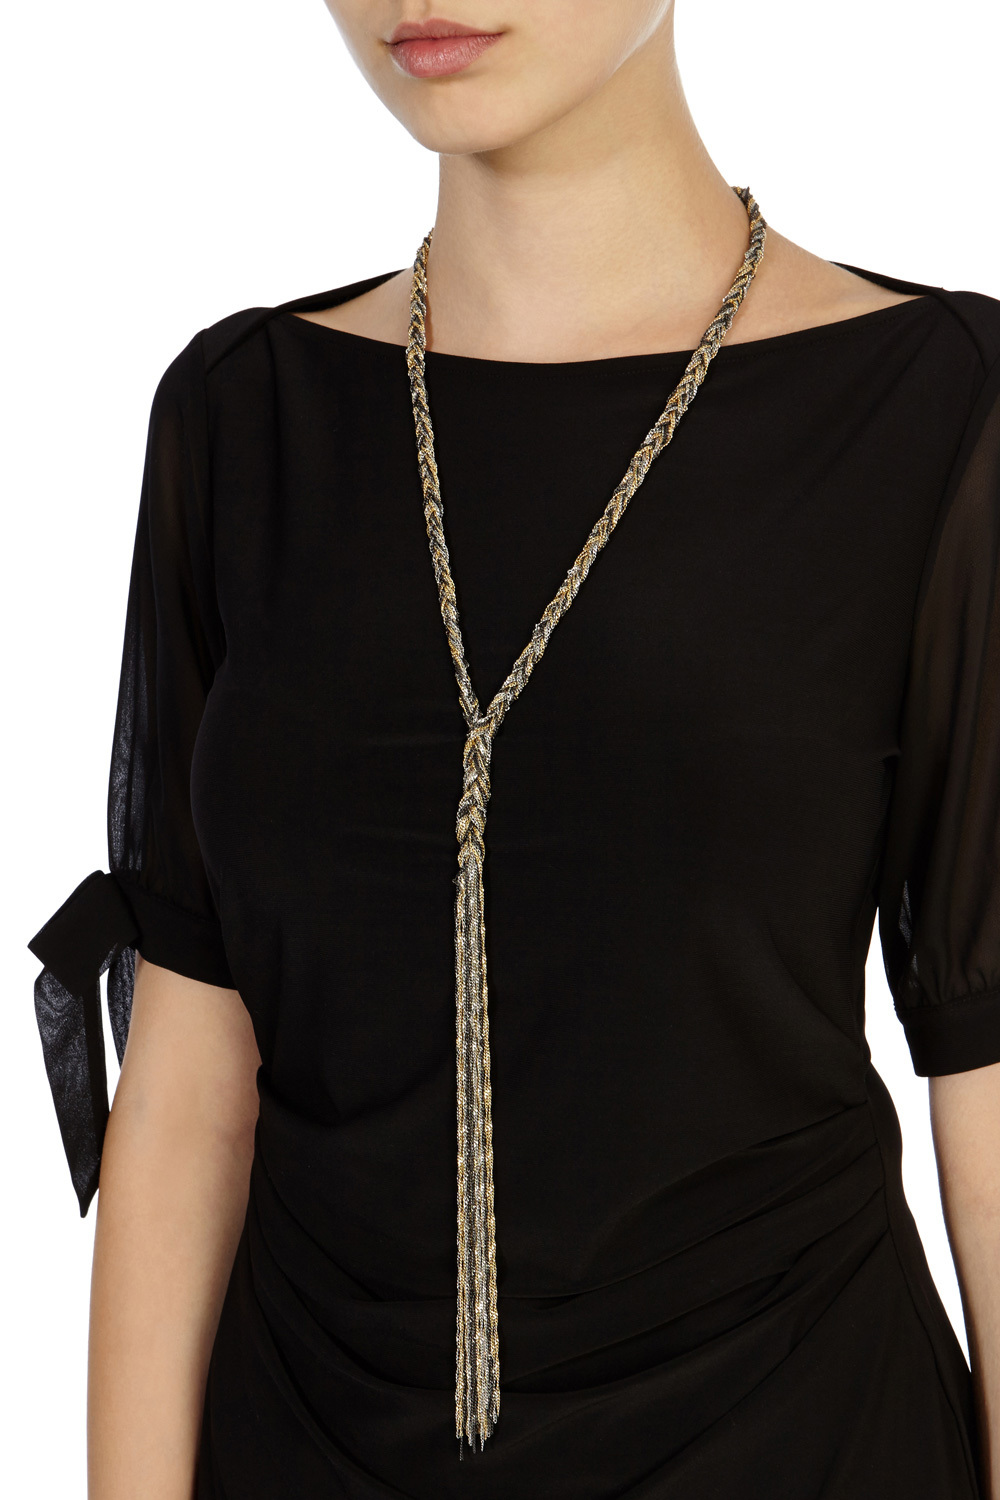 Evie Plated Longline Necklace - predominant colour: gold; occasions: evening, occasion; style: pendant; length: long; size: large/oversized; material: chain/metal; finish: metallic; season: s/s 2016